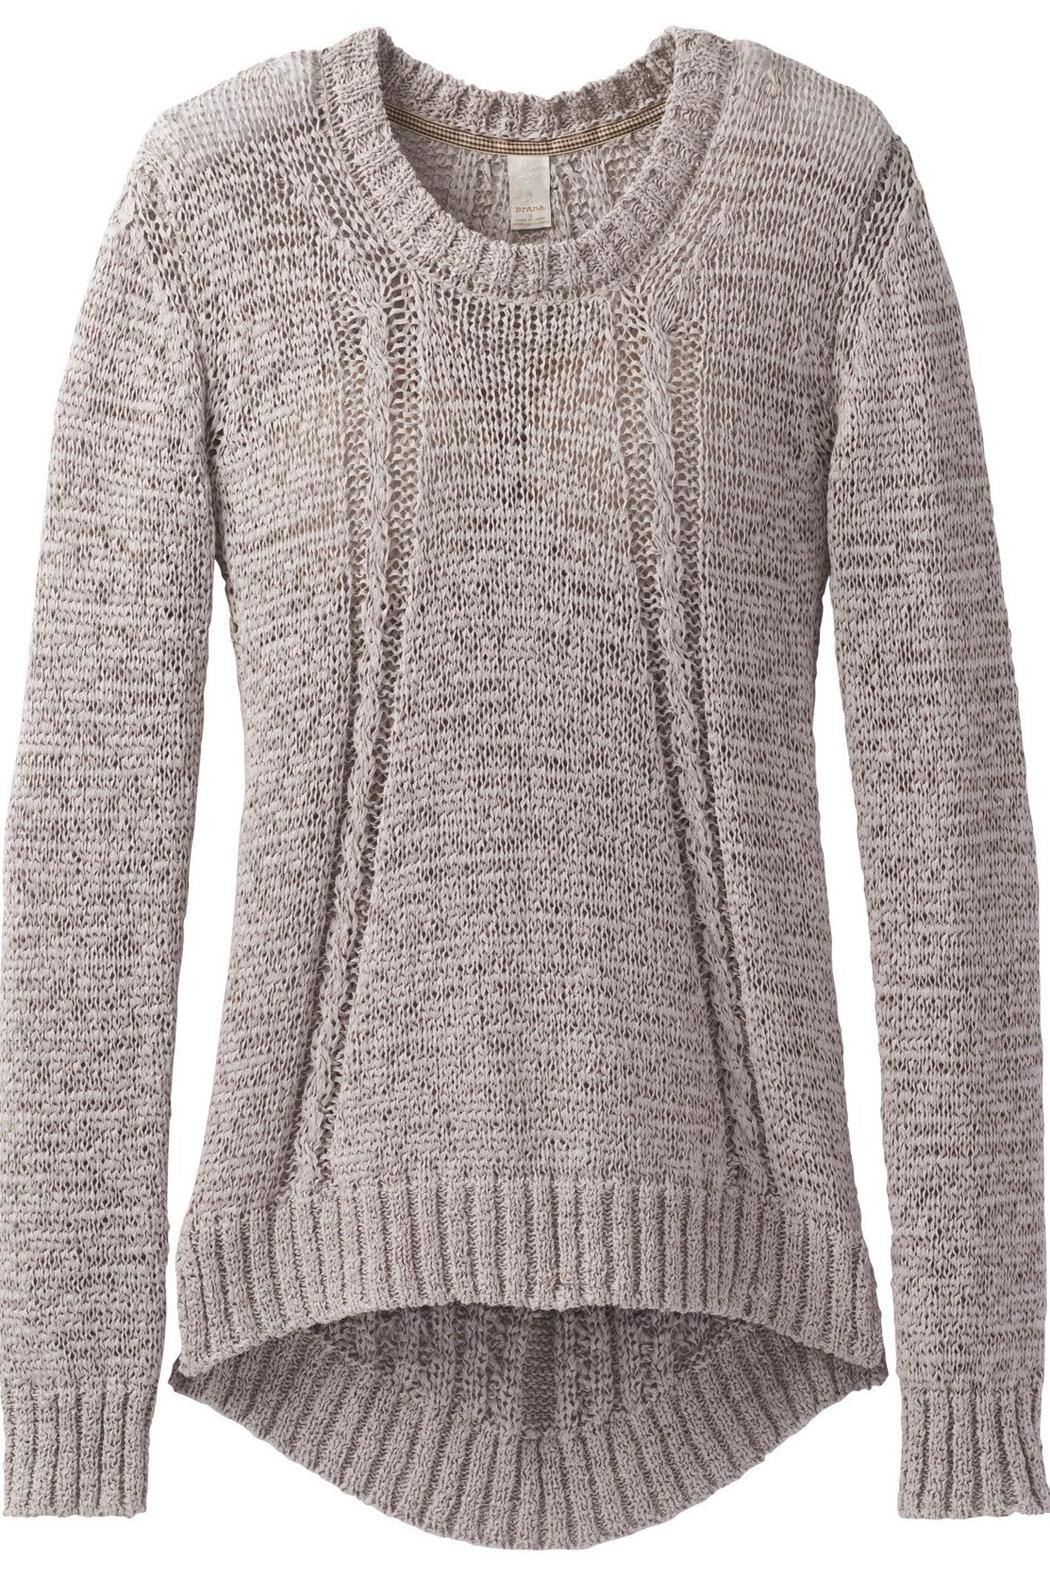 Prana Long Sleeves Sweater - Main Image